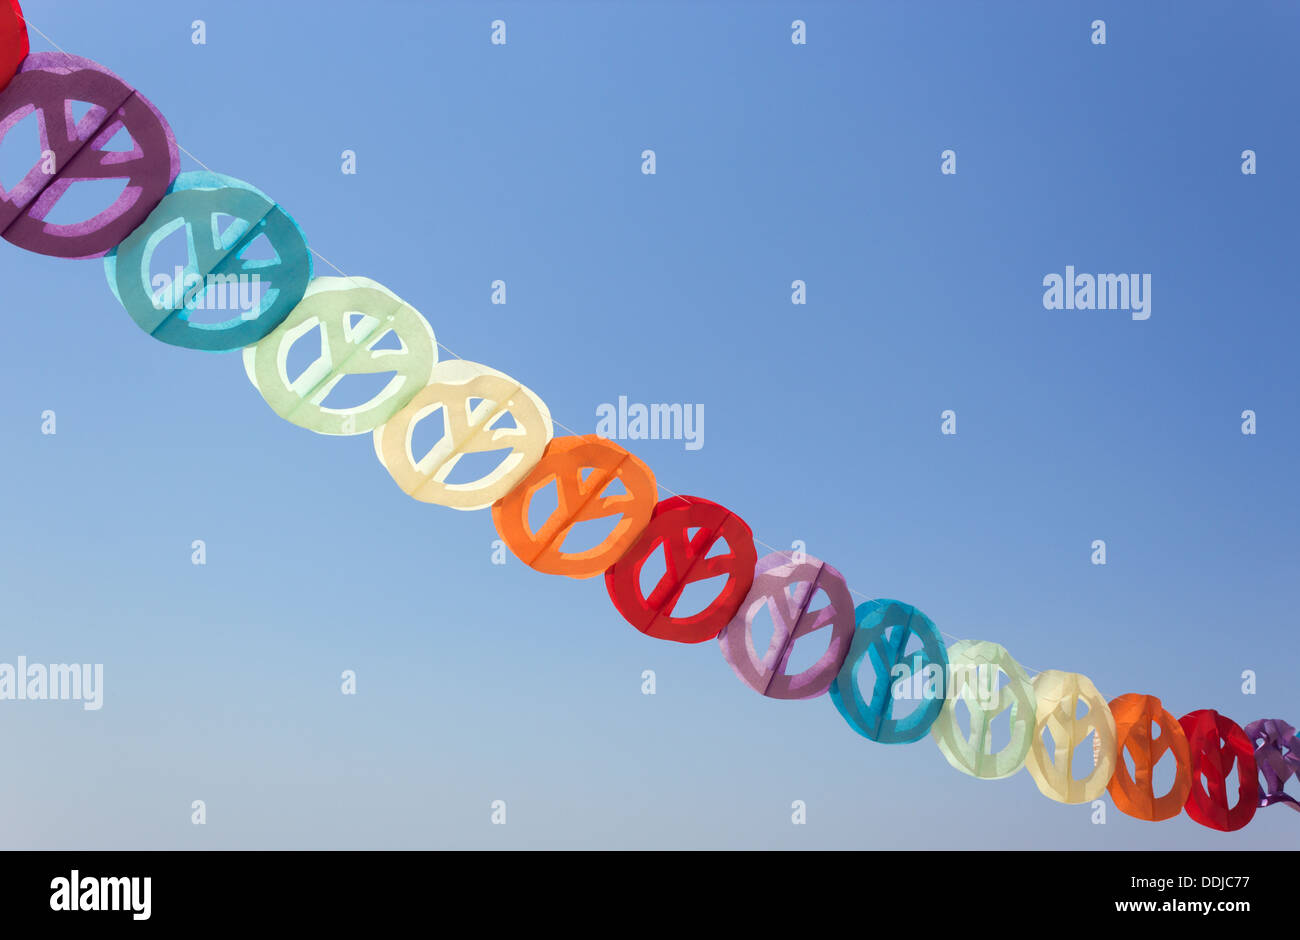 Paper garland of coloured peace signs against blue sky. - Stock Image